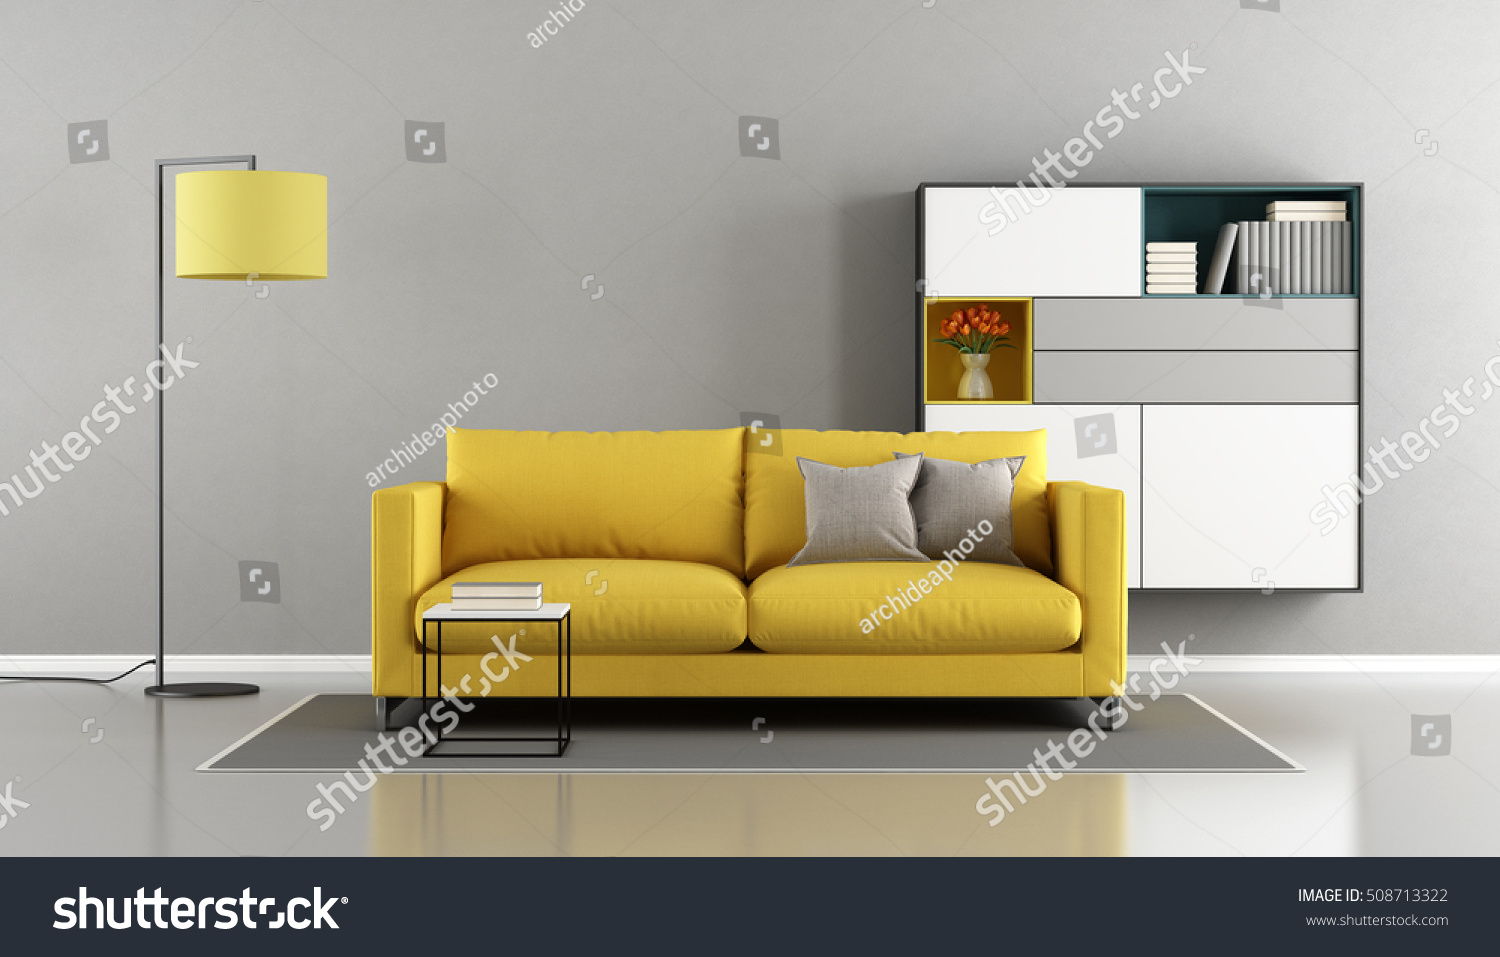 Modern Living Room With Yellow Couch And Sideboard On Wall   3d Rendering